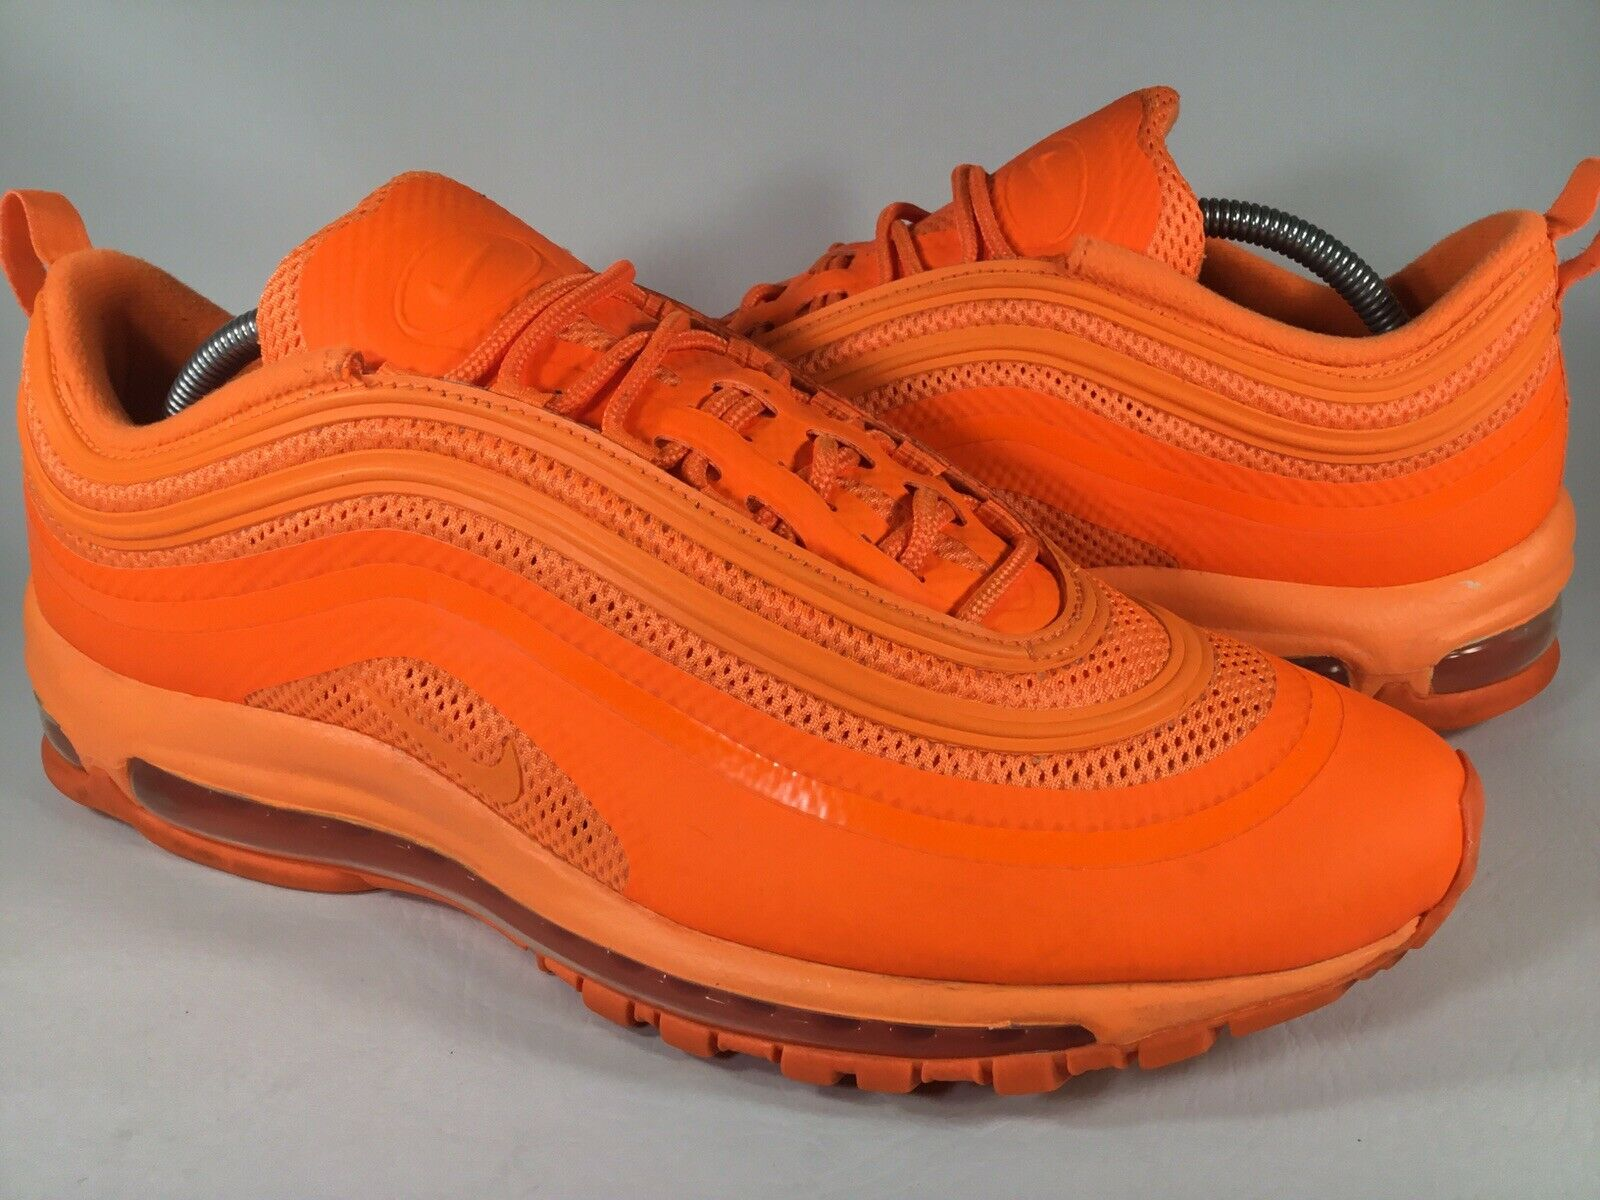 Nike Air Max 97 Hyperfuse Total Orange Homme Taille 11 RARE 518160-880 Running